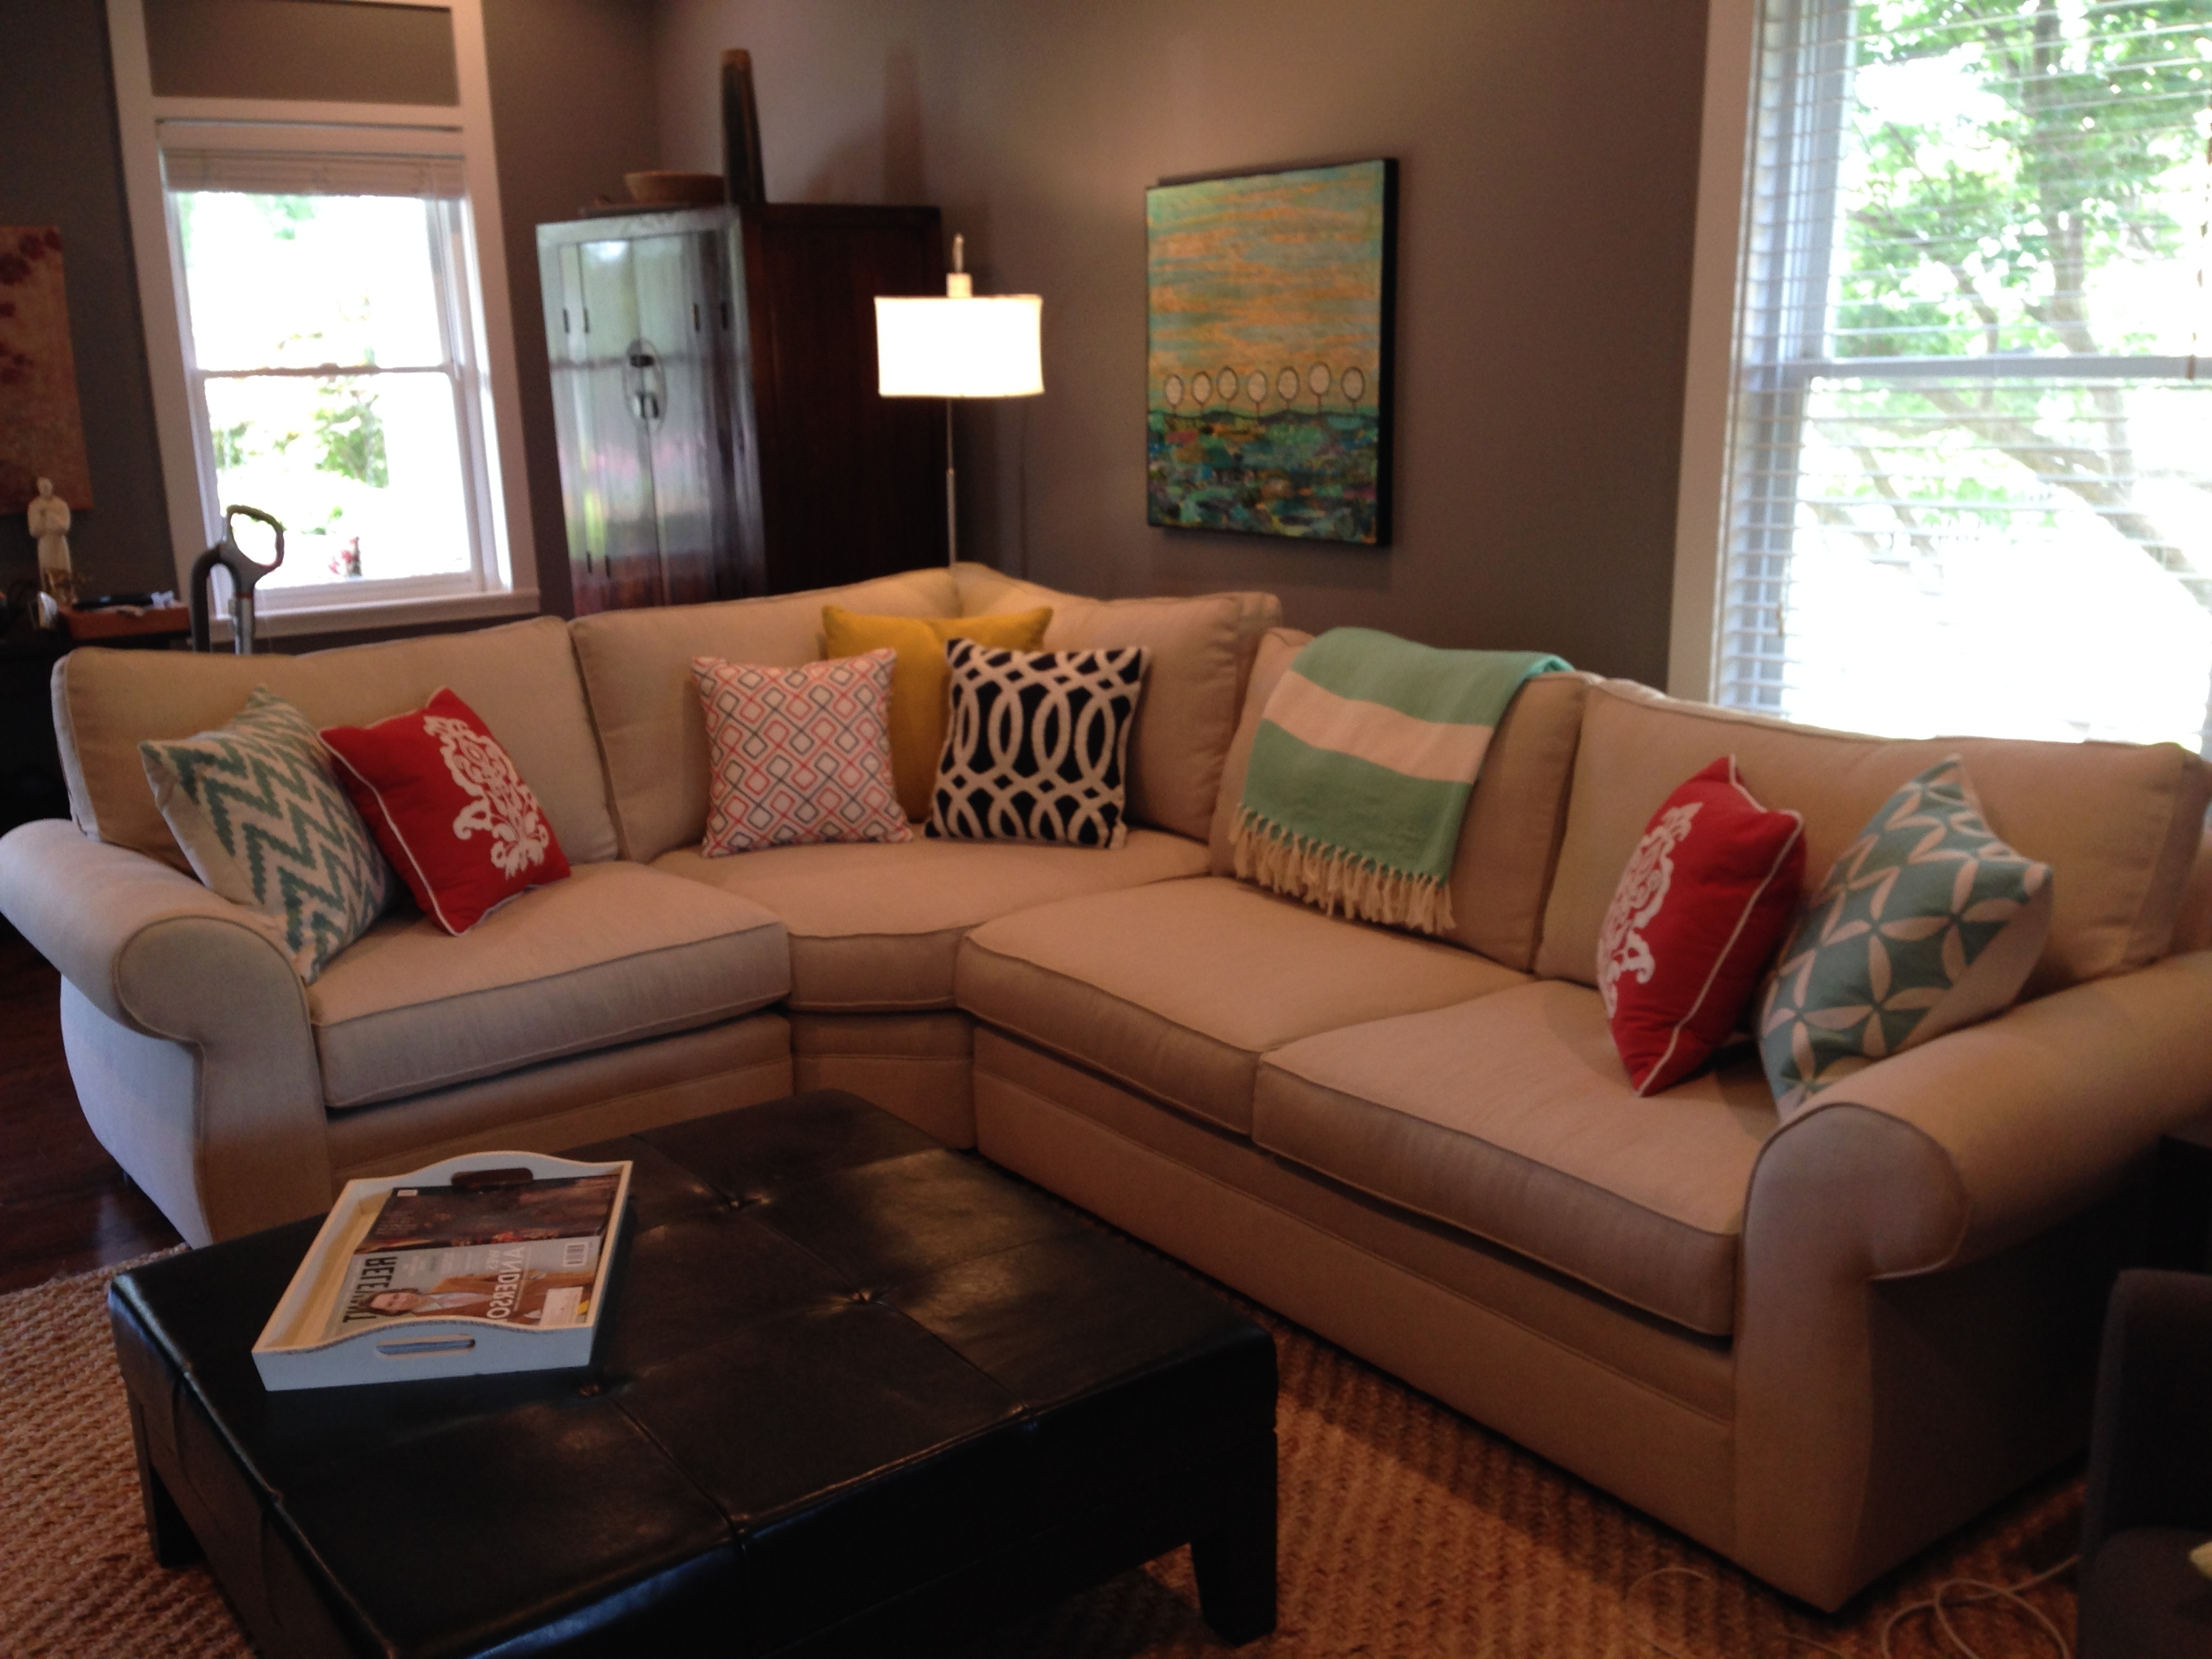 The Most Popular Sectional Sofas Pottery Barn 11 On Apartment In Popular Pottery Barn Chaises (View 15 of 15)